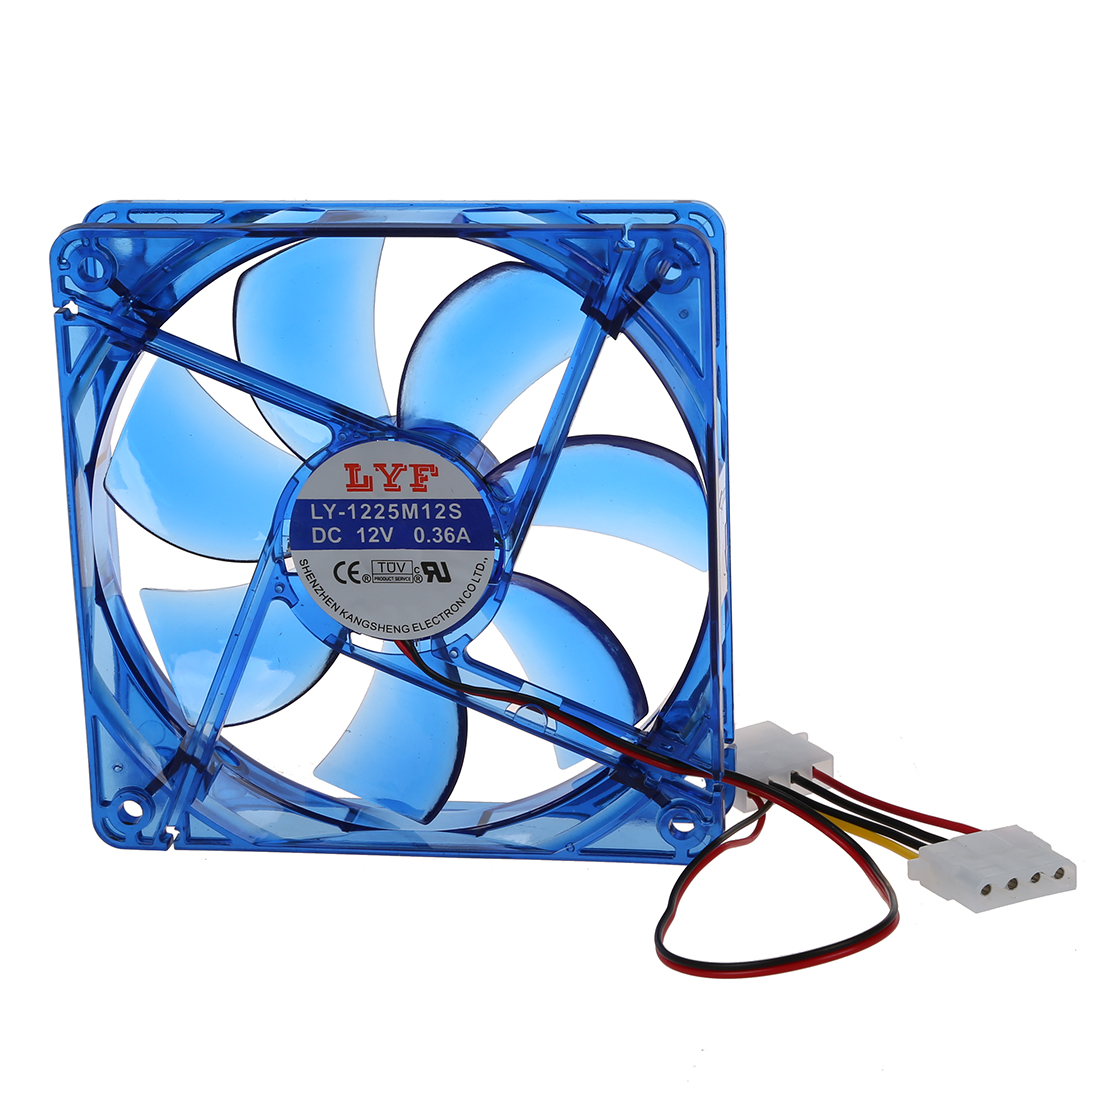 PPYY NEW -DC 12V 4-Pin 4 Blue LED <font><b>PC</b></font> Computer Enclosure <font><b>Fan</b></font> <font><b>120</b></font> x 25 <font><b>mm</b></font> image